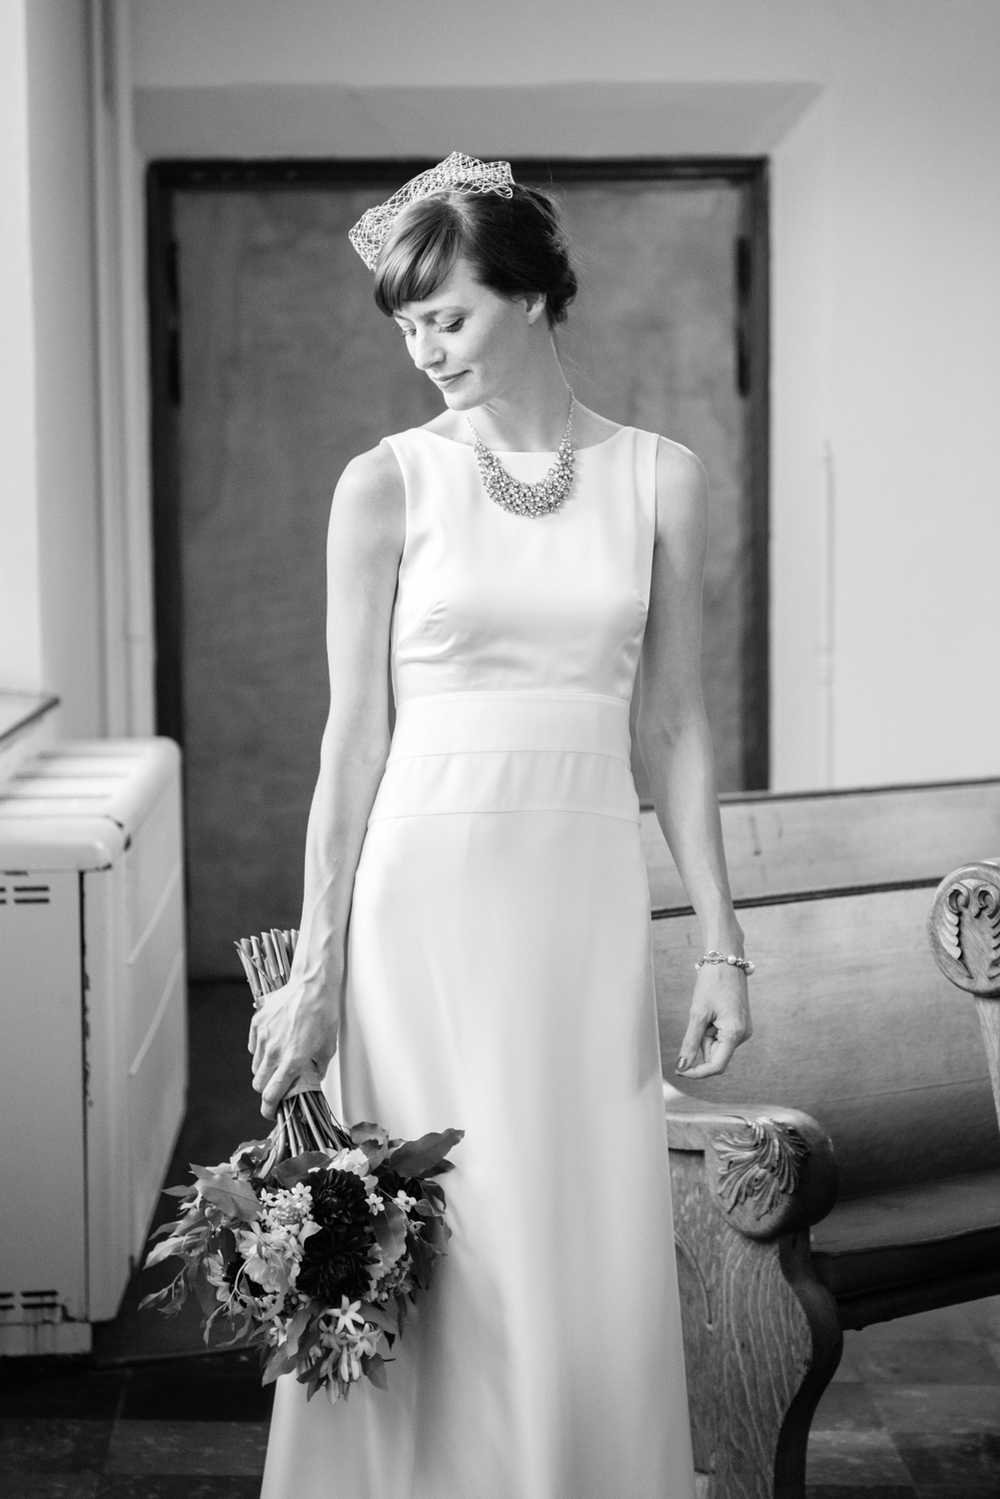 Wedding-Photography-Bee-C-Photography-Iowa-Oskaloosa-Des-Moines-3.jpg